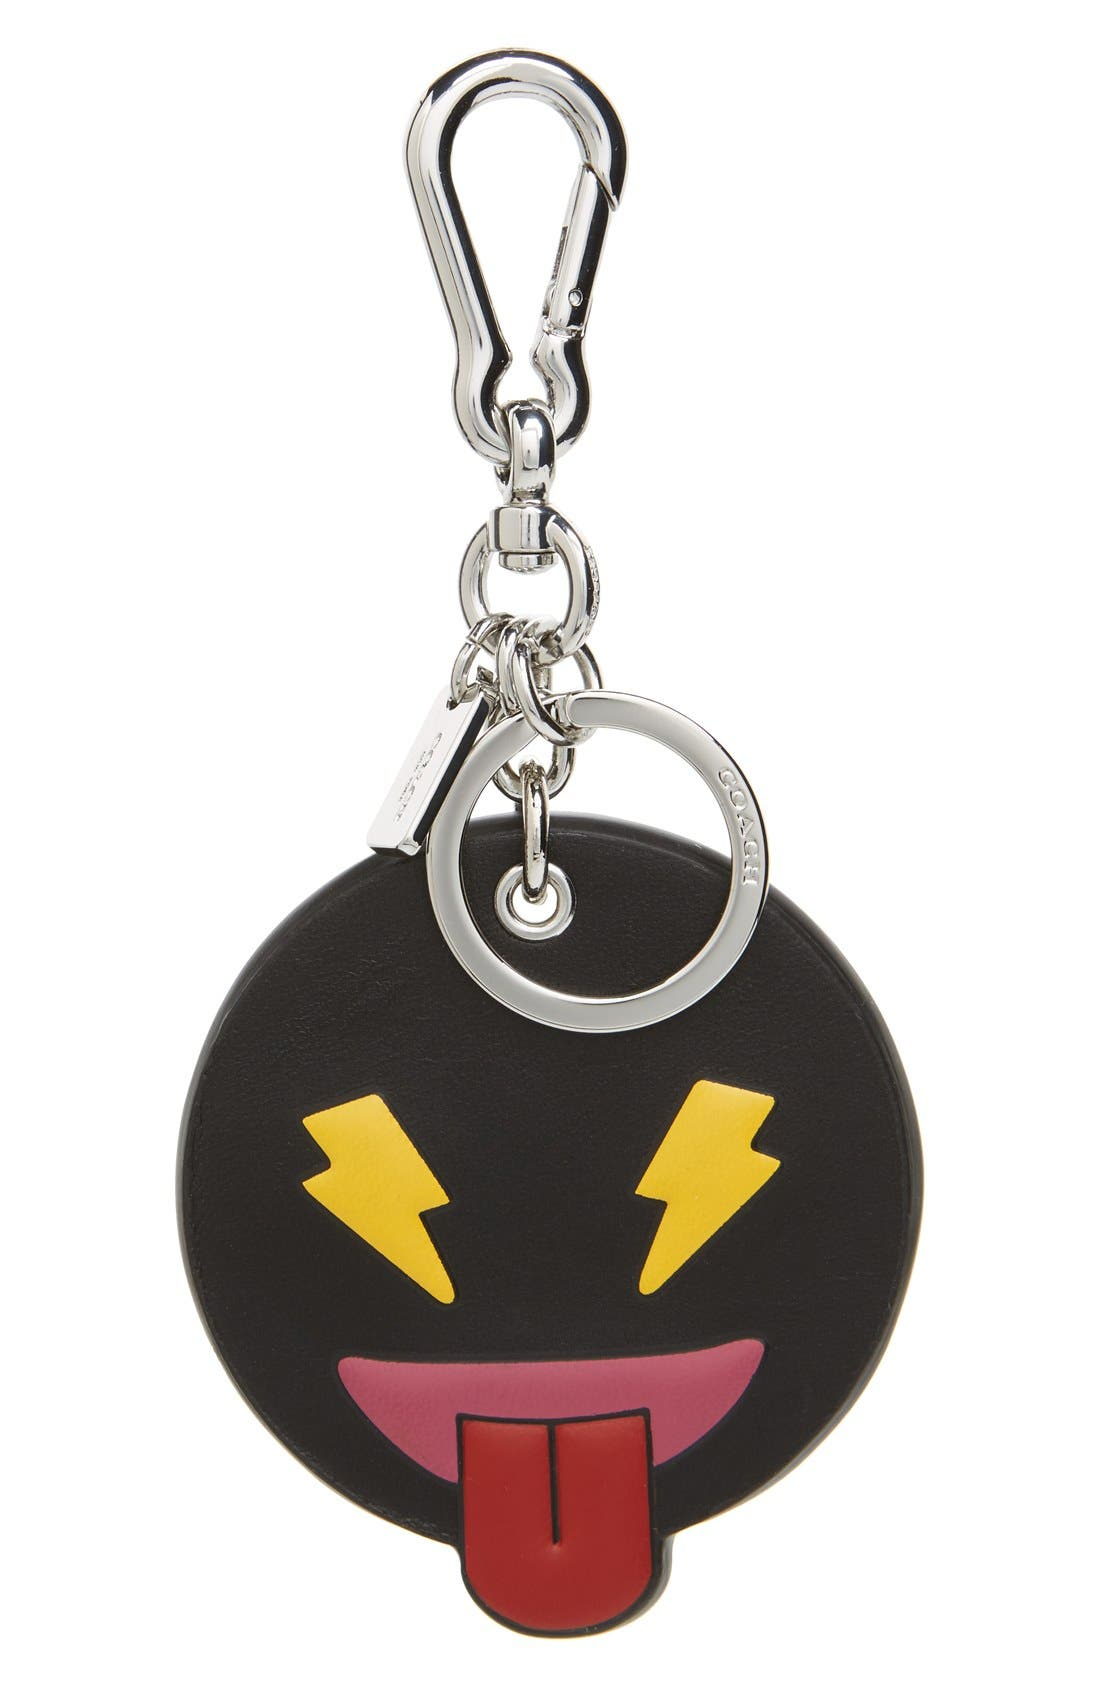 Main Image - COACH 'Cheeky Emoji' Bag Charm